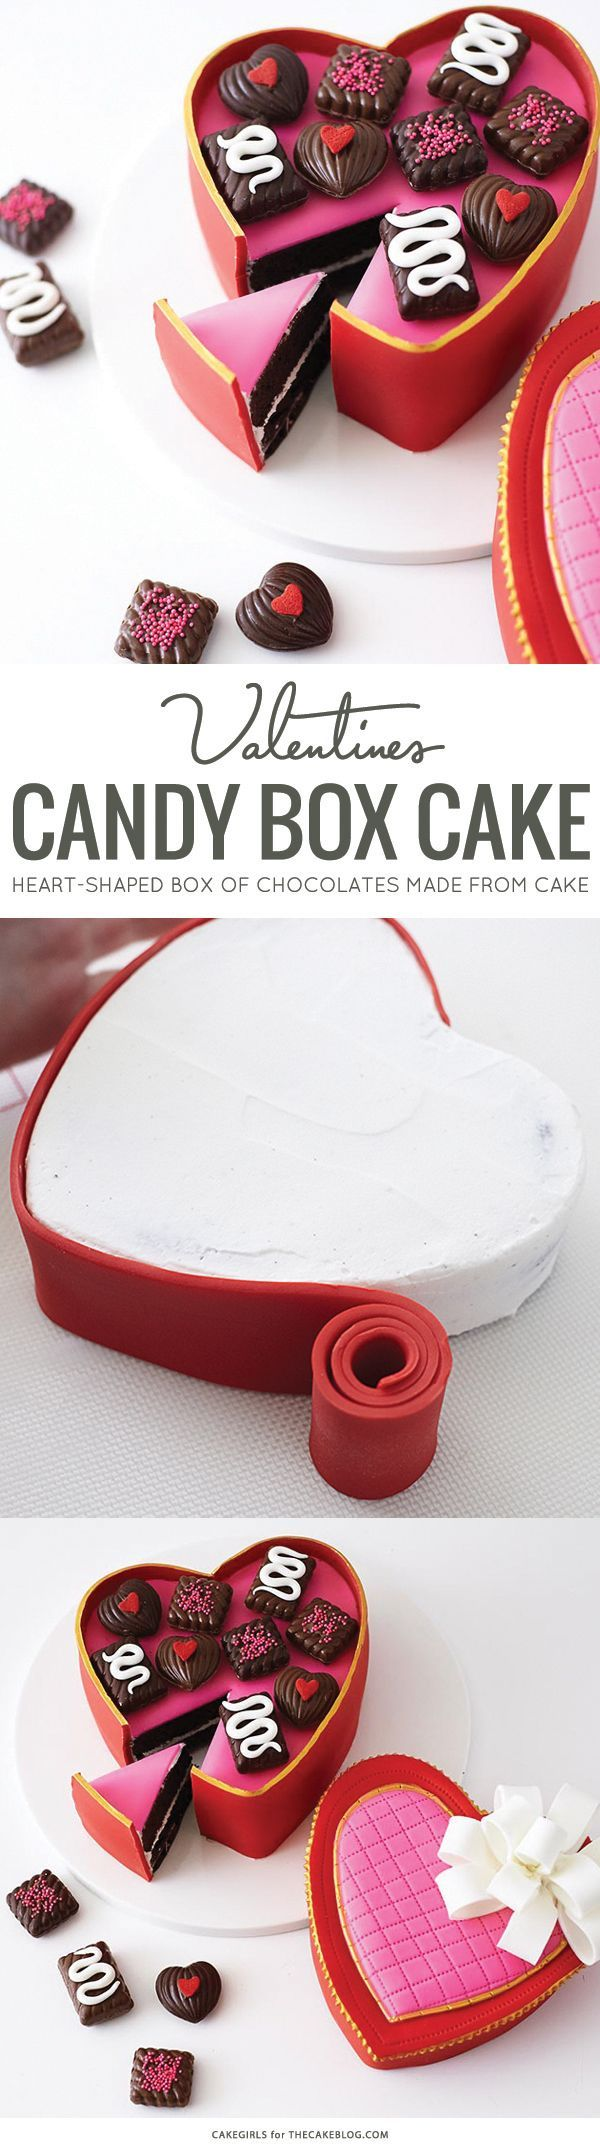 How to Make a Cake Shaped Box to Hold Wedding Cards How to Make a Cake Shaped Box to Hold Wedding Cards new pictures